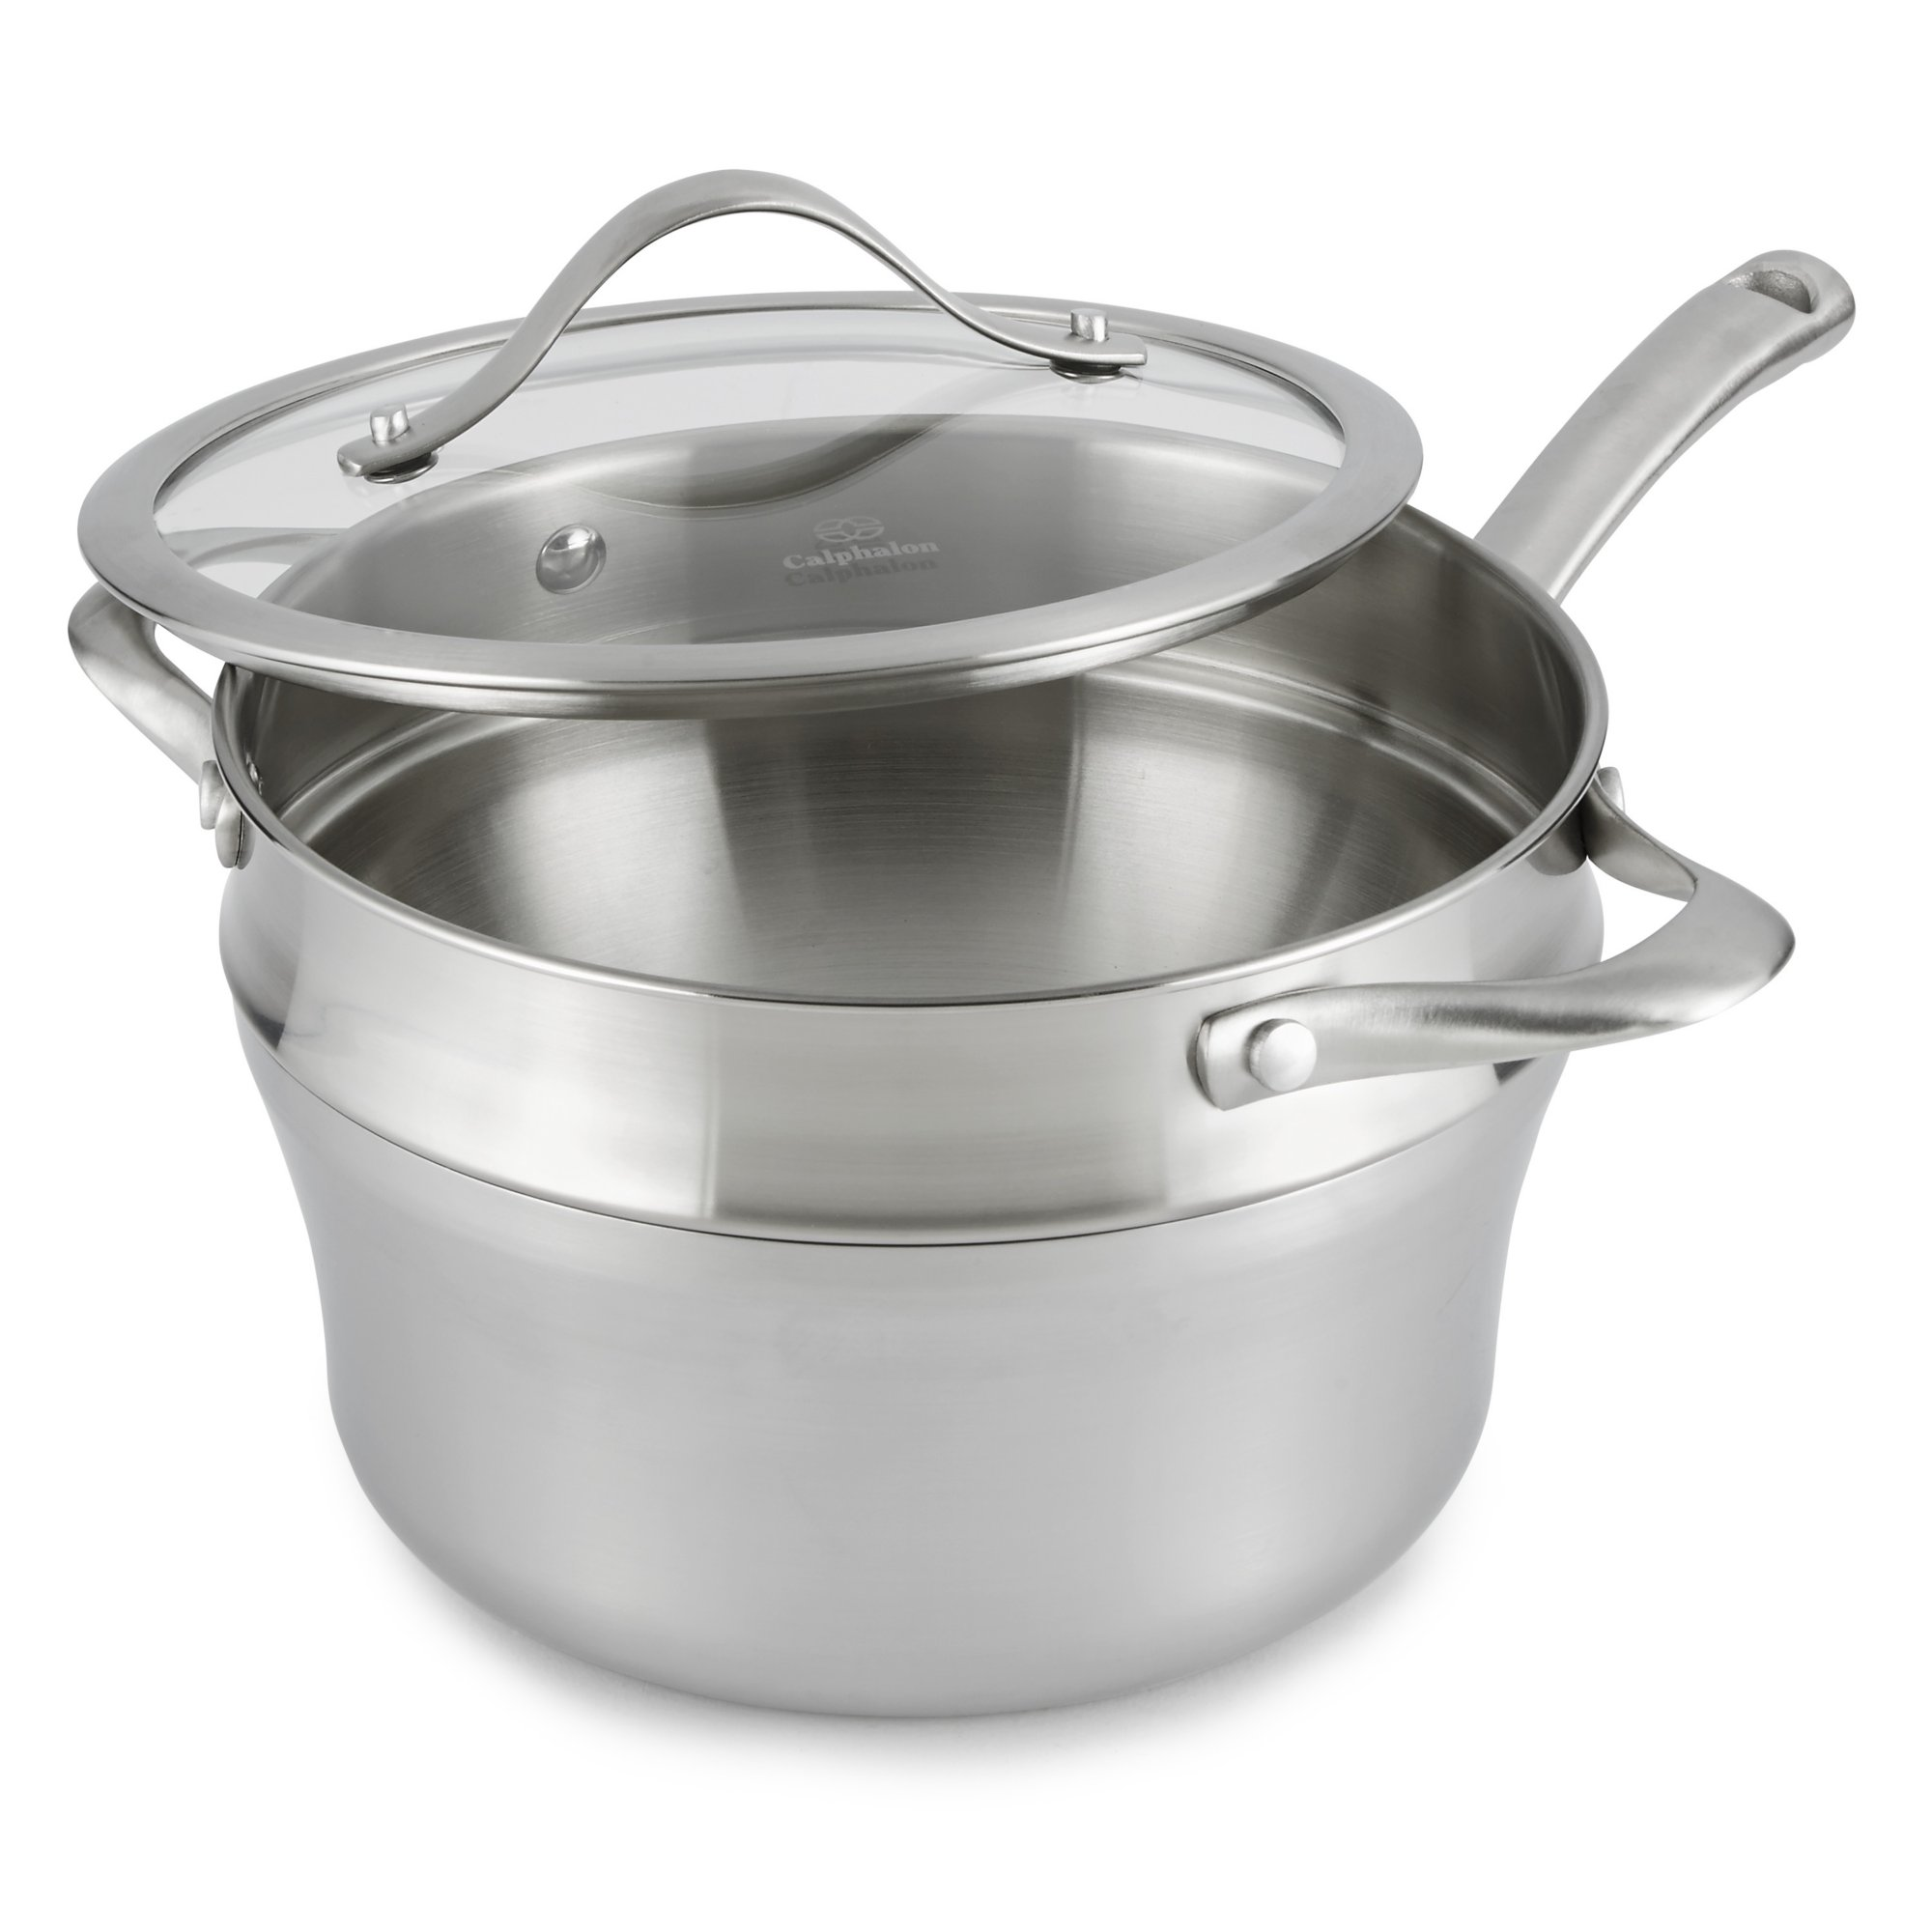 Calphalon Contemporary Stainless Steel 2.5-Quart Sauce and Double Boiler